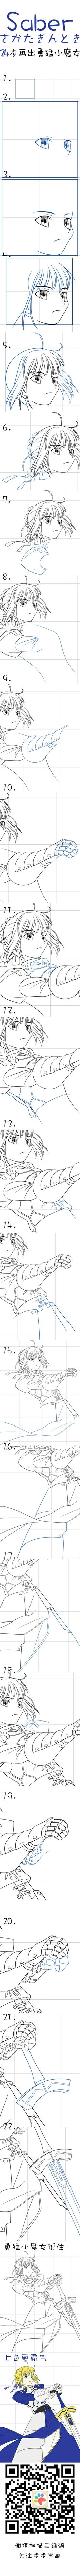 Learn how to draw Saber in Fate Stay Night